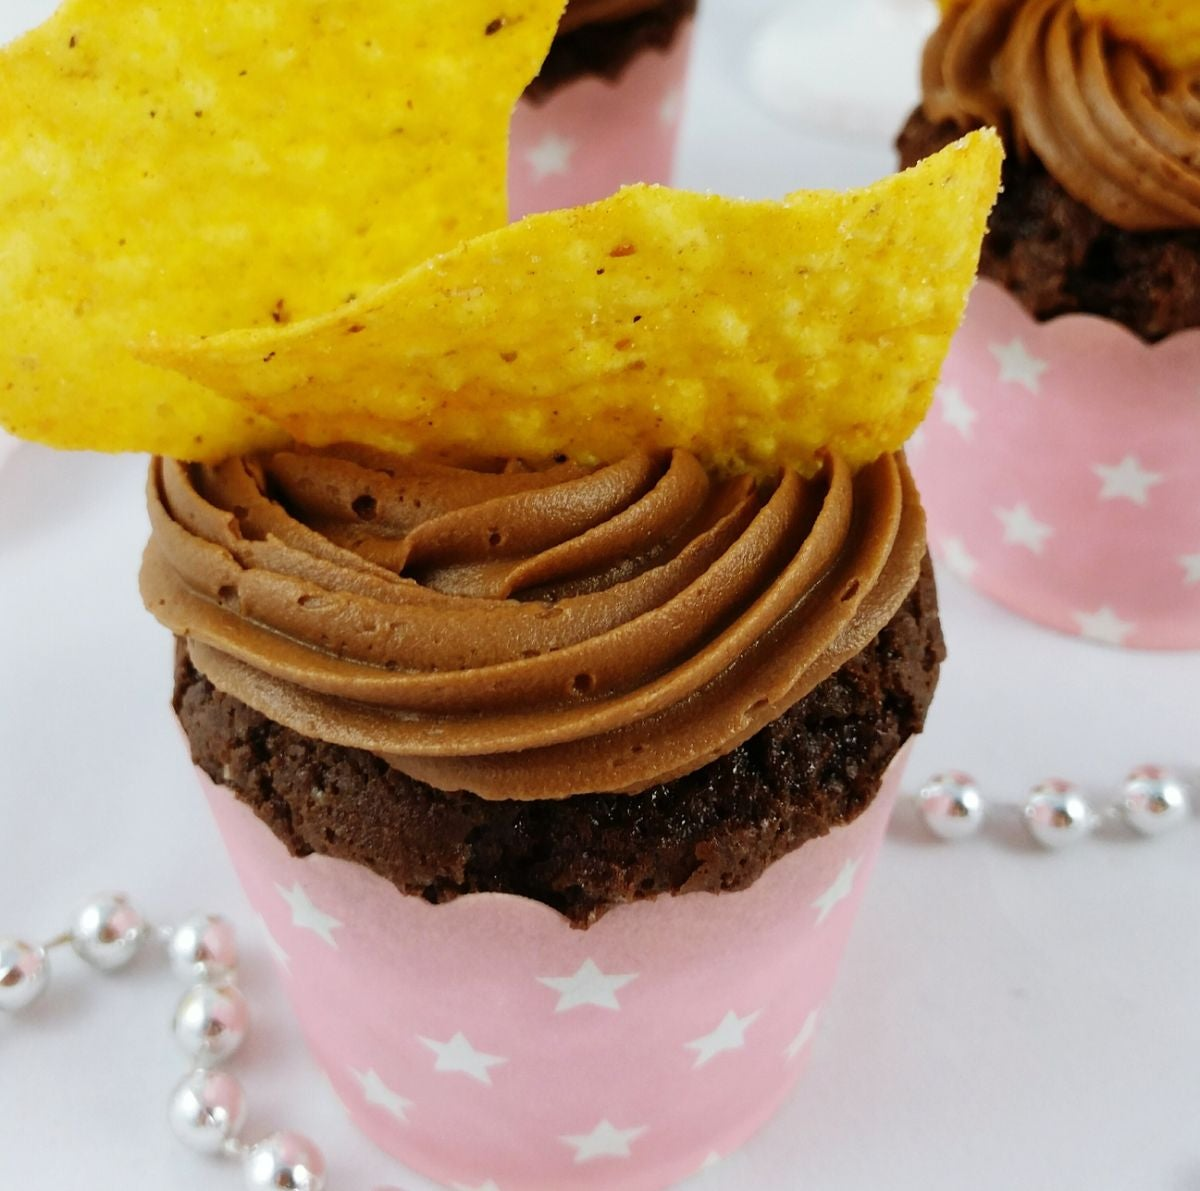 Chocolate cupcakes with a Dorito on top